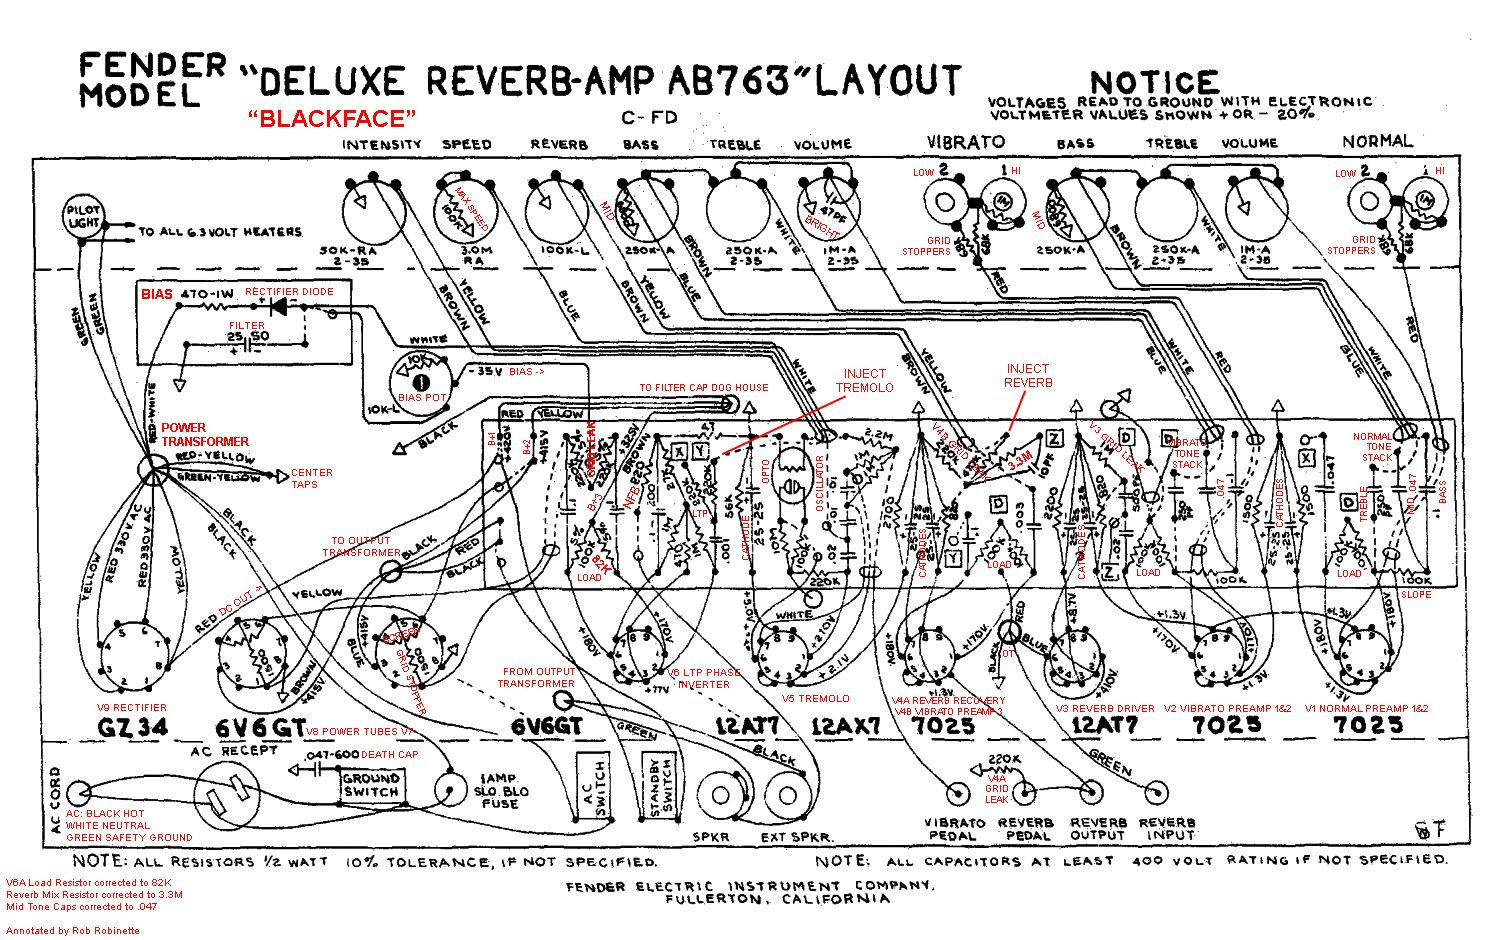 Fender Deluxe Reverb Ab763 Tube Guitar Amplifier Annotated Layout By Audio Circuits July 2009 Circuit Equalizer Mixer Robrobinettecom